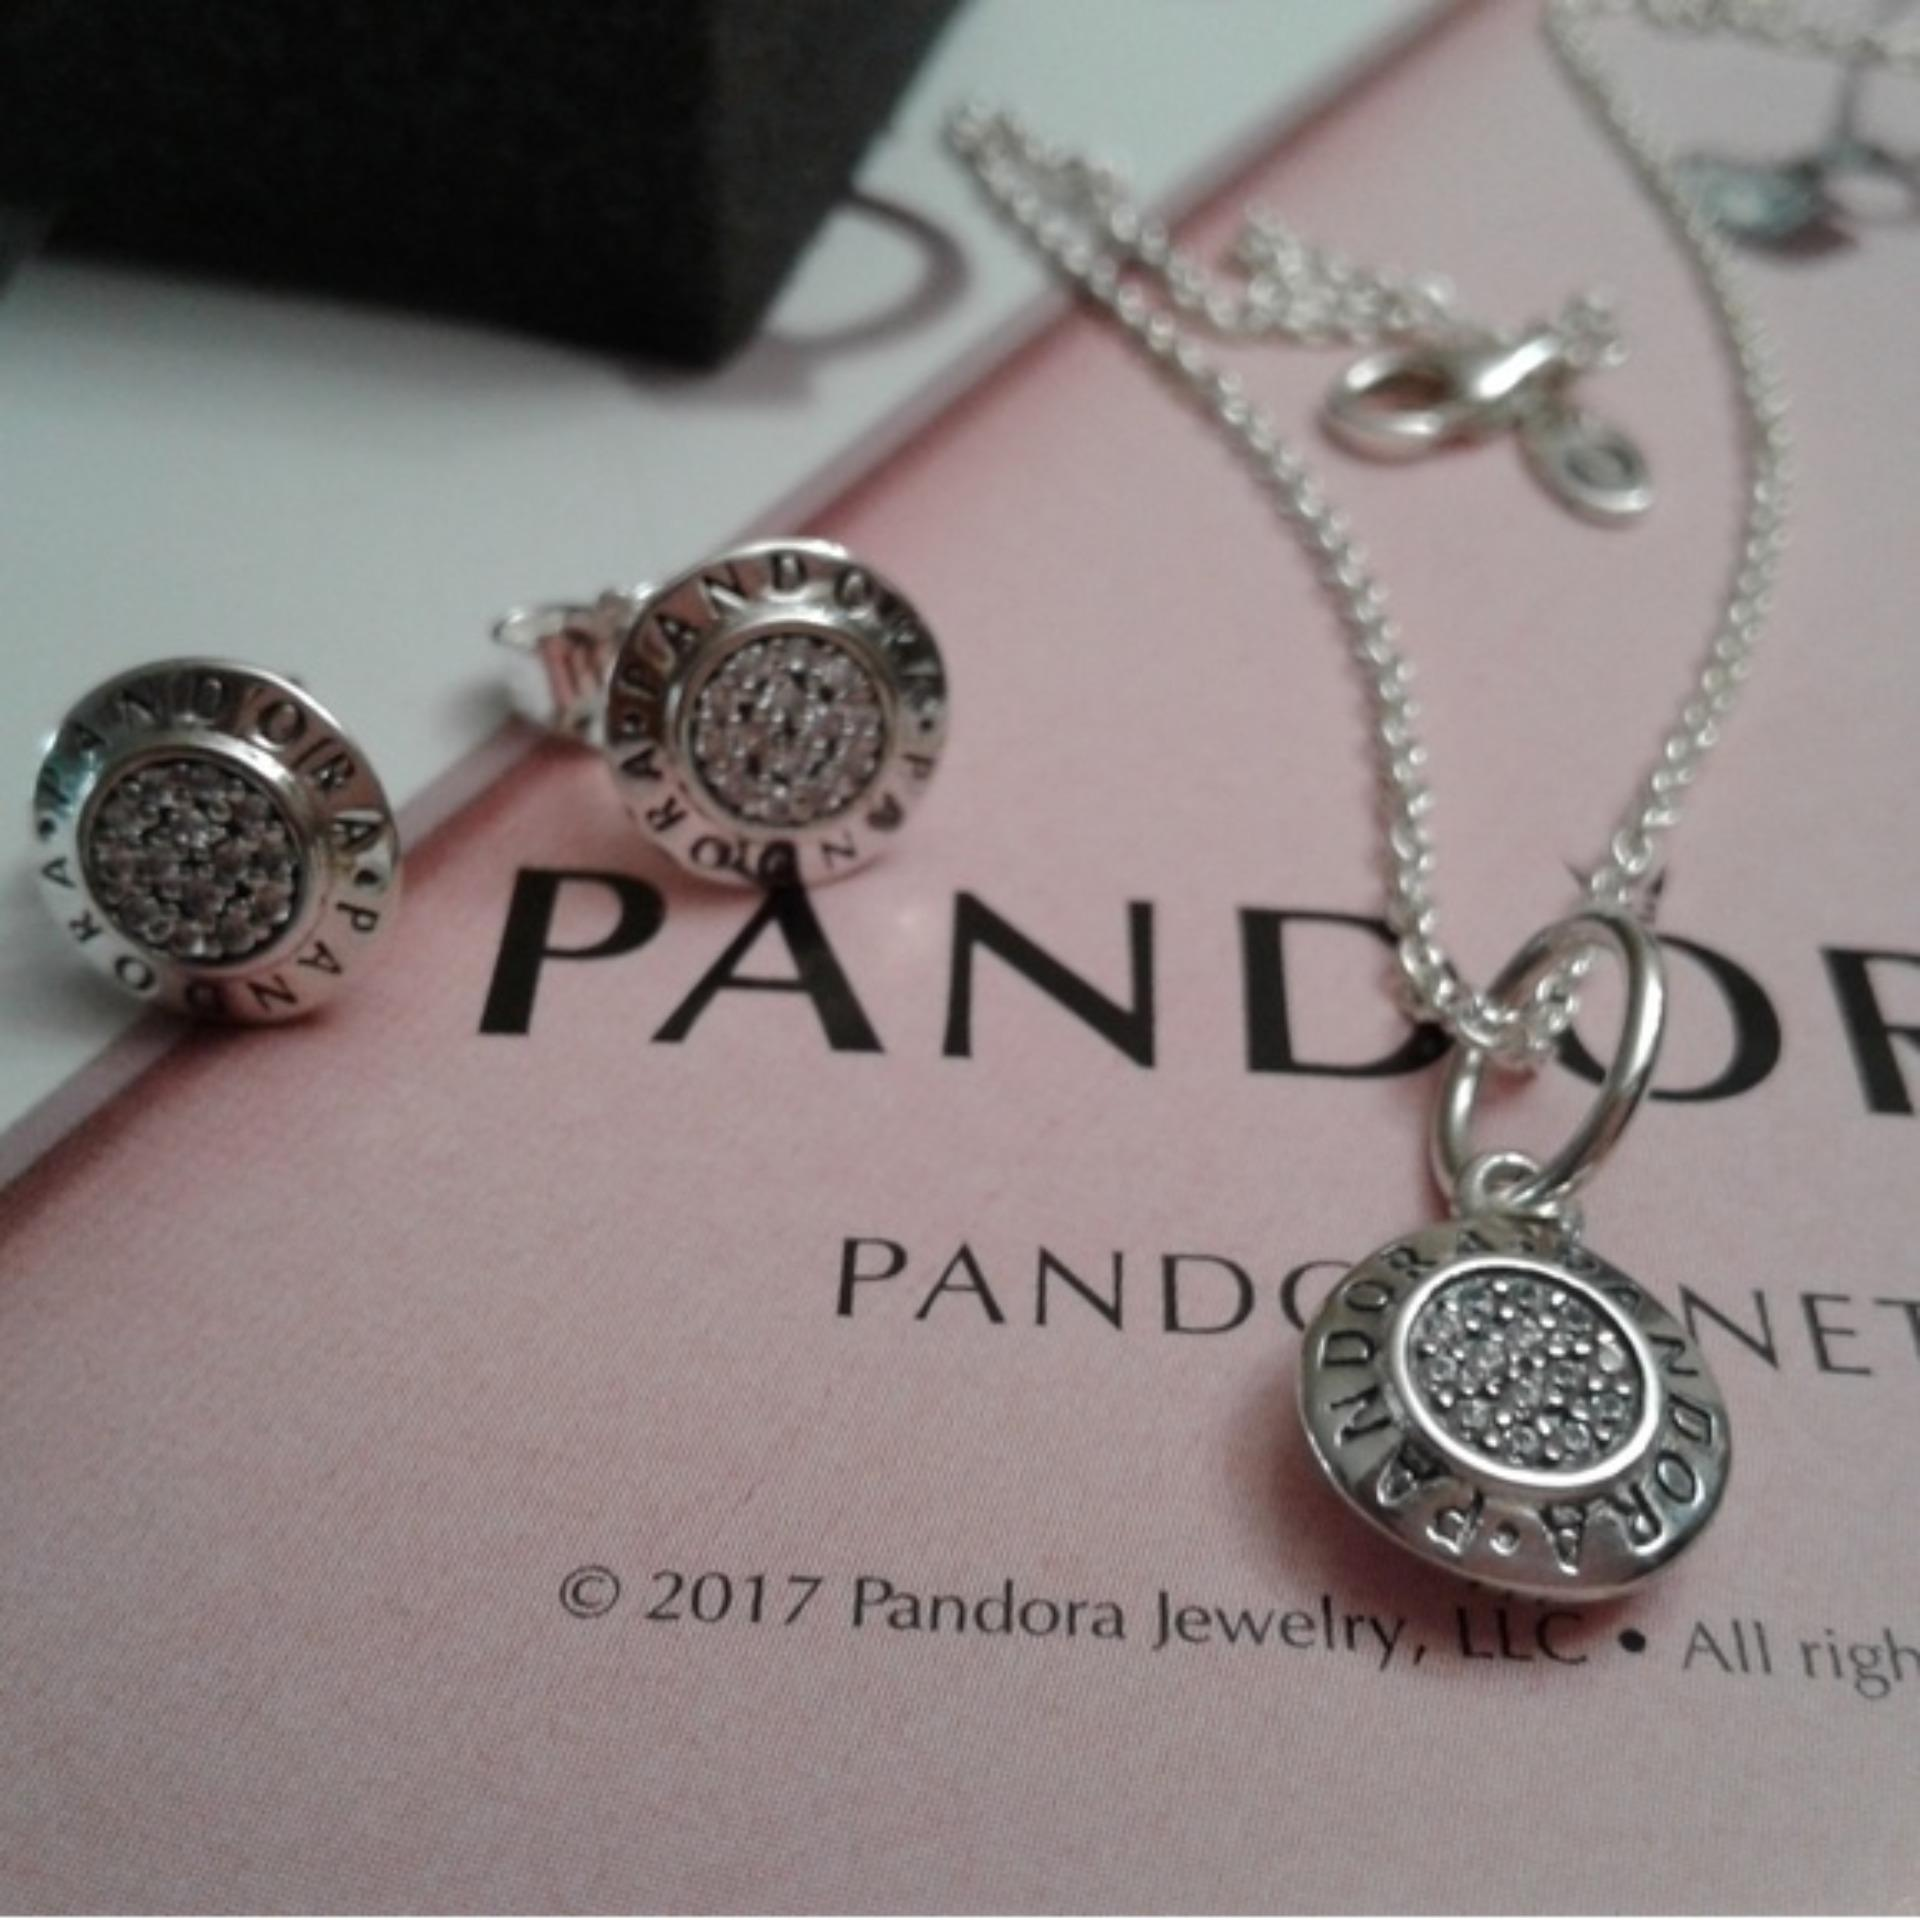 457a003dc Pandora Philippines: Pandora price list - Pandora Watches & Charms ...